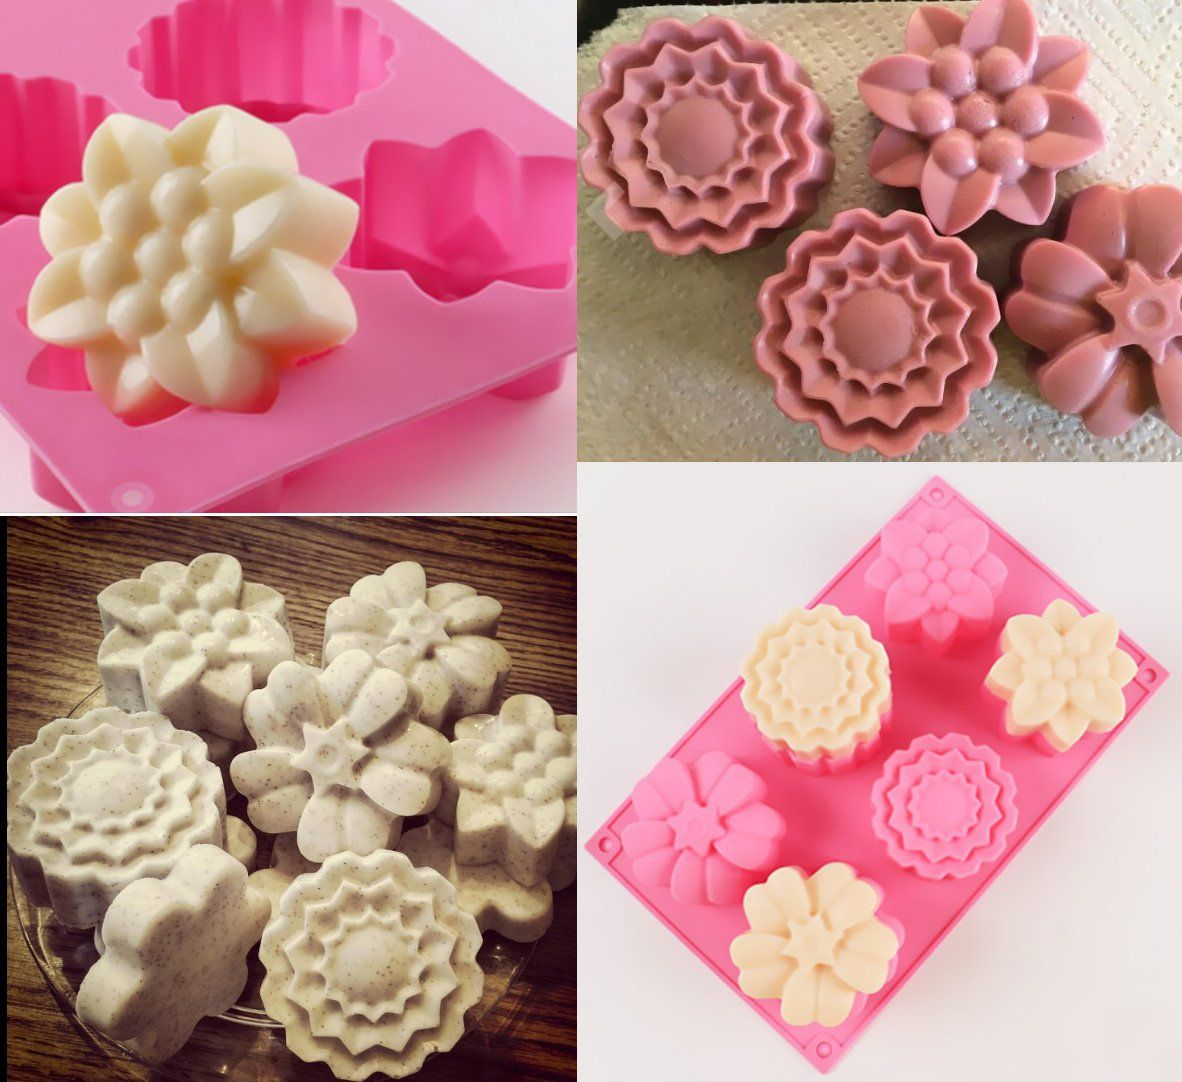 Ouddy 3 Pack 6 Cavity Flower Shape Silicone Soap Making